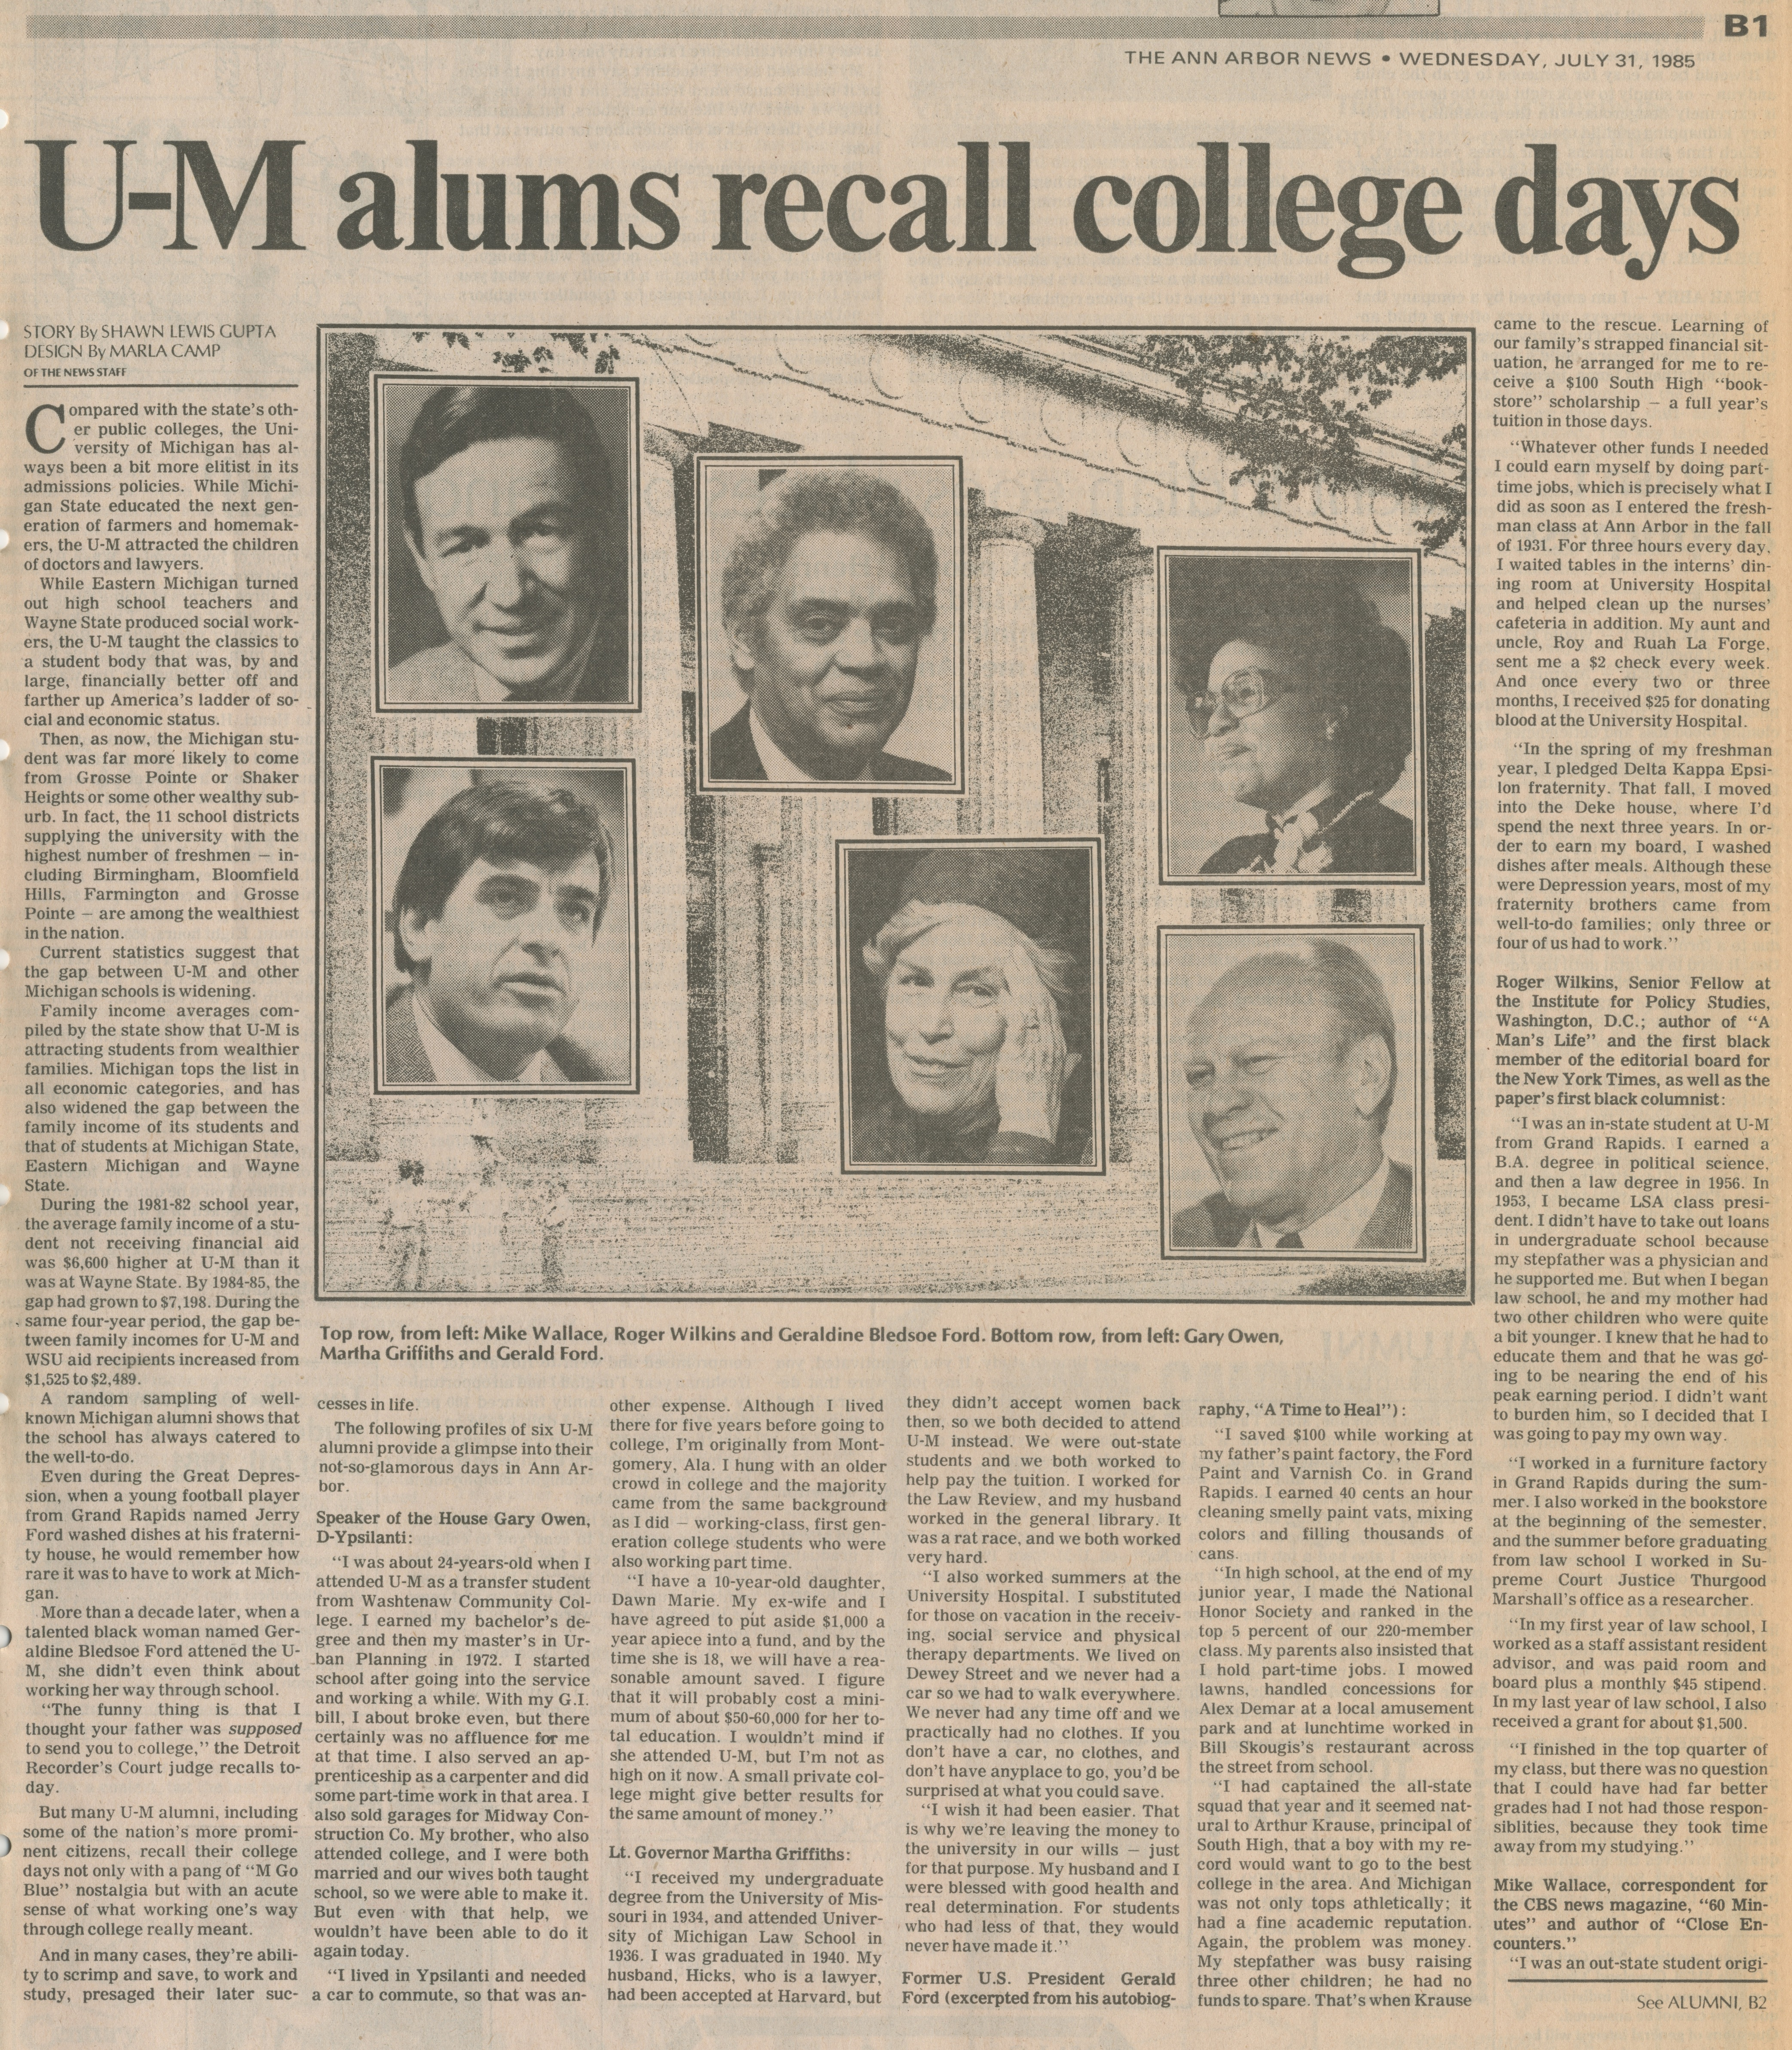 U-M alums recall college days image